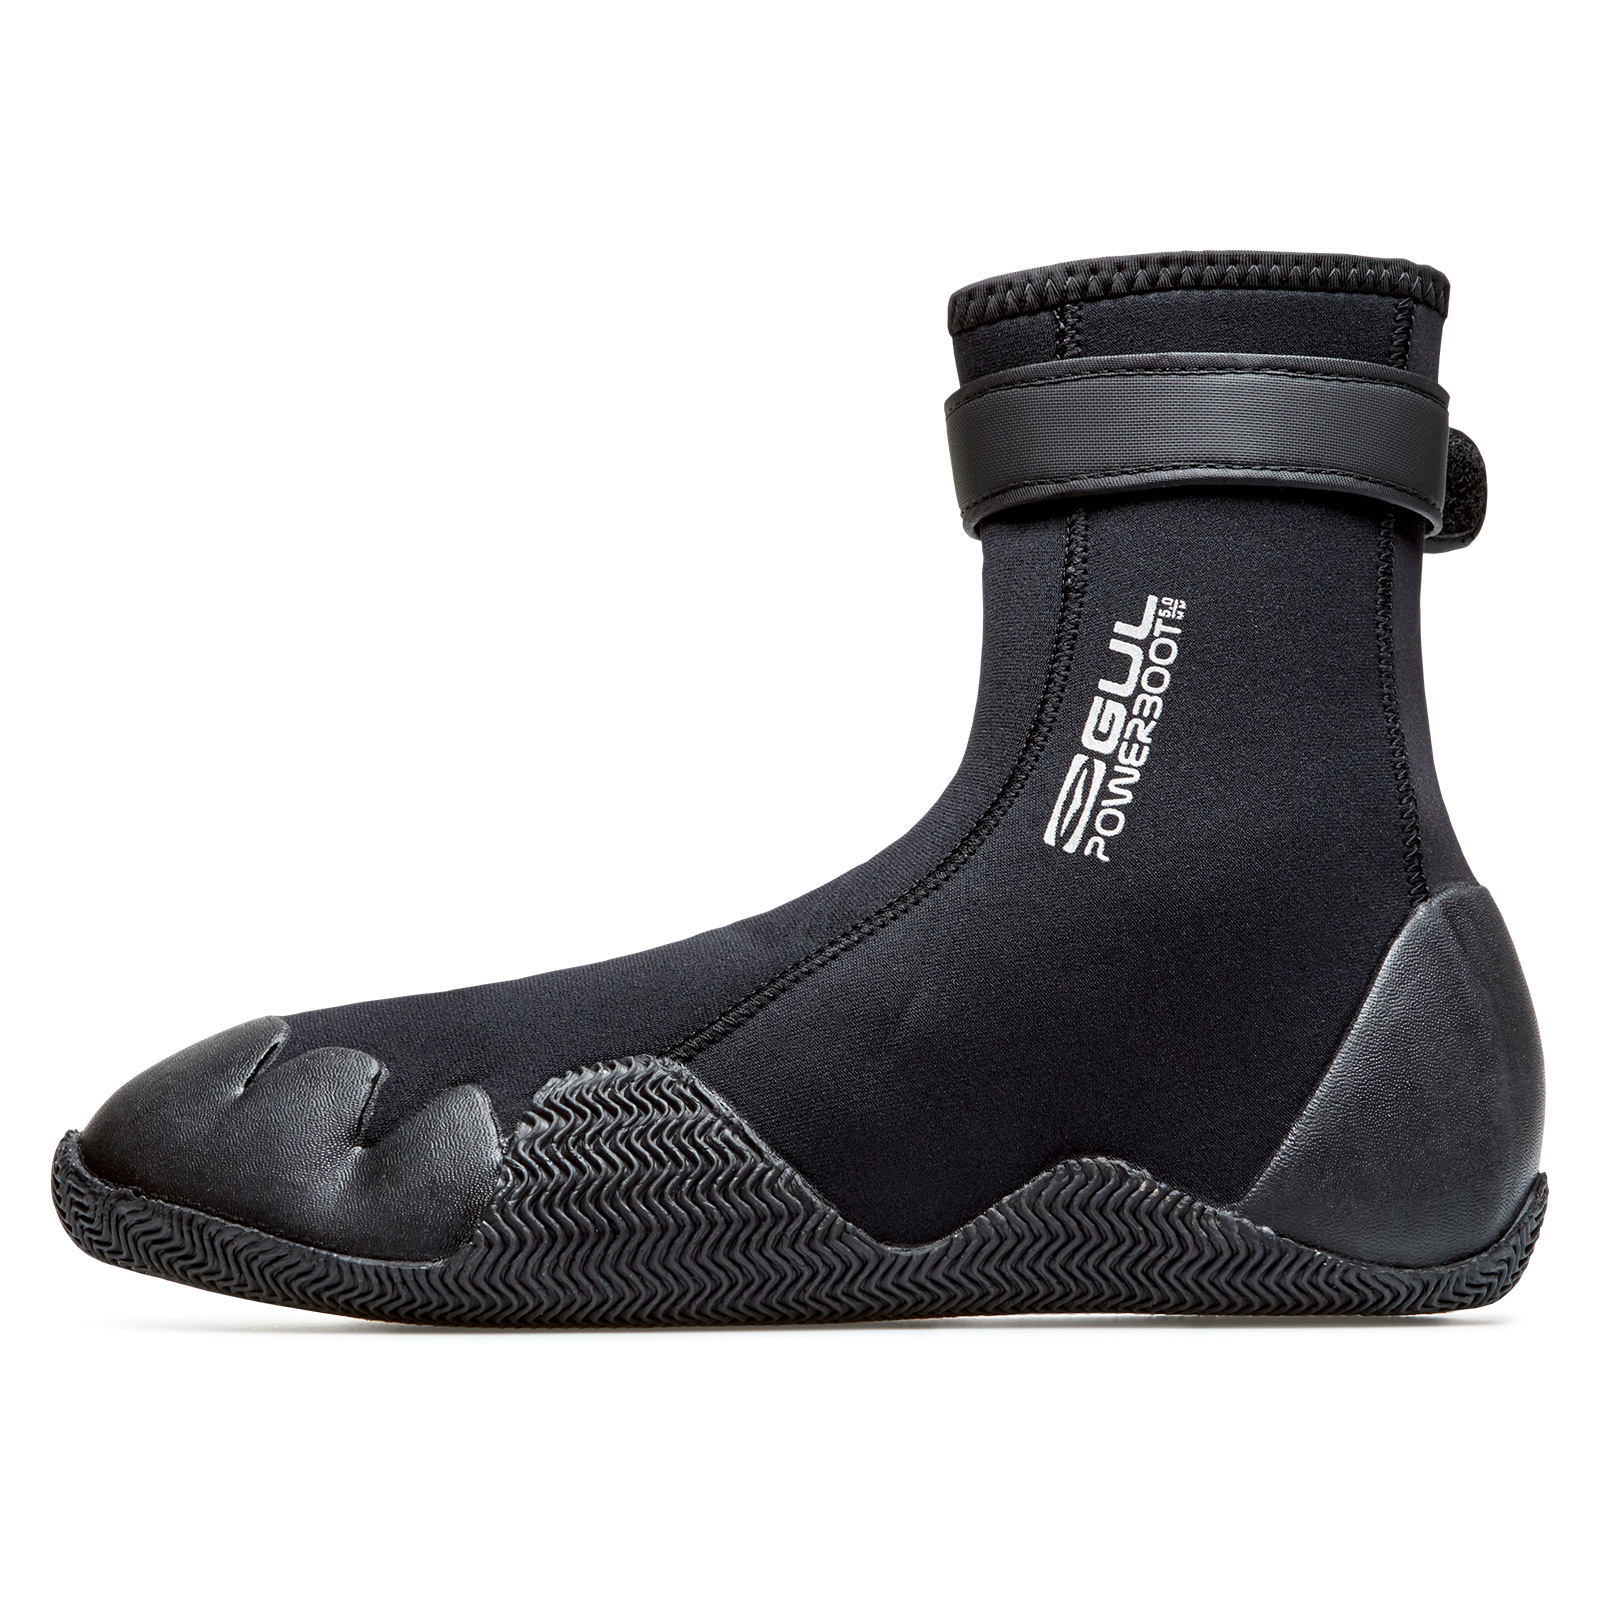 Gul-5mm-Power-Neoprene-Adult-Wetsuit-Boots-Watersports-Surf-Sail-Swim-Mens-Boot thumbnail 20